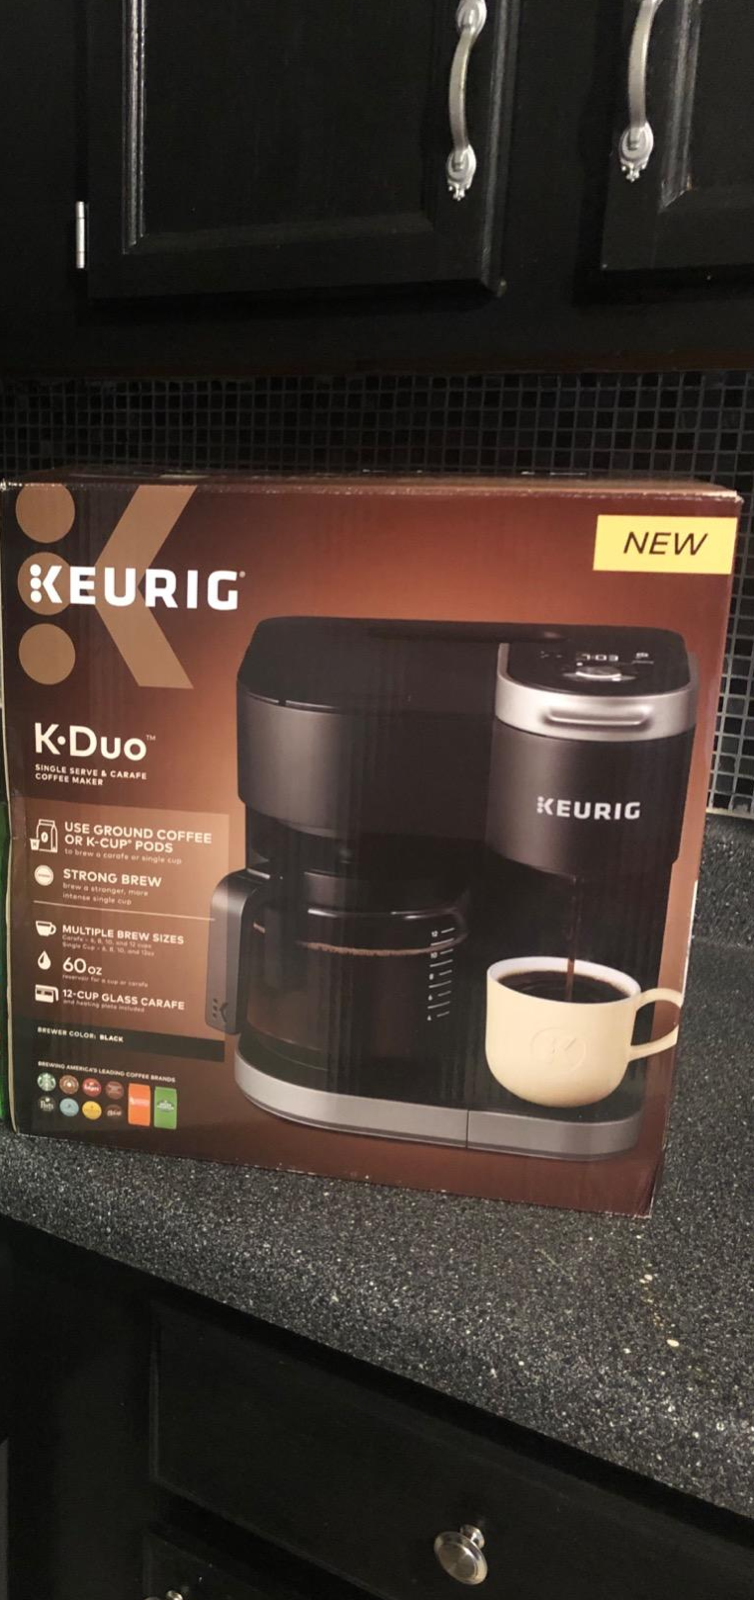 Hot Sale K Duo Coffee Maker Single Serve And 12 Cup Carafe Drip Coffee Brewe Cupping Coffee Ideas Of Cupping Coffee Cuppingcof In 2020 Single Coffee Maker Coffee Coffee Cups